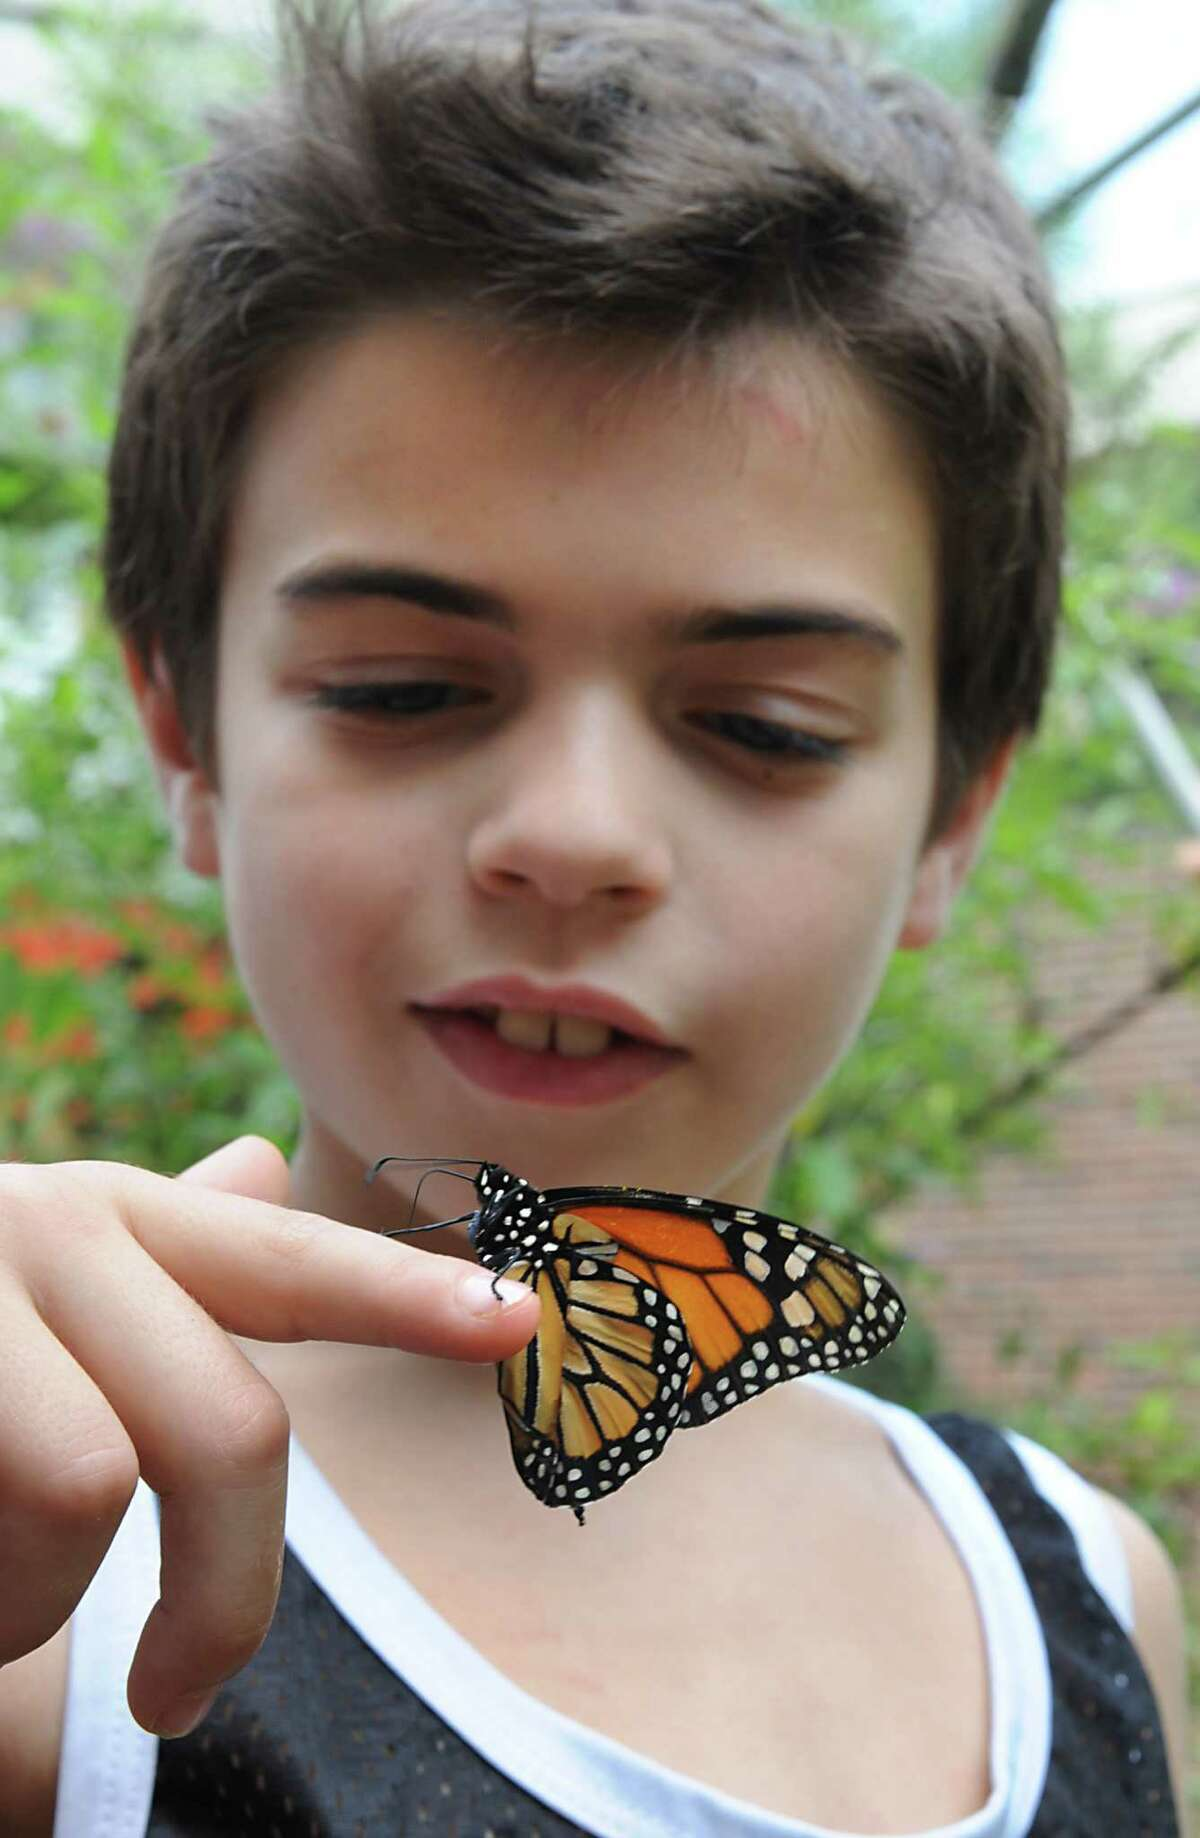 Josh Kaufman, 9, of Guilderland catches a butterfly before students at Farnsworth Middle School release a group of Monarch butterflies on Friday, Aug. 17, 2012 in Guilderland, N.Y. (Lori Van Buren / Times Union)